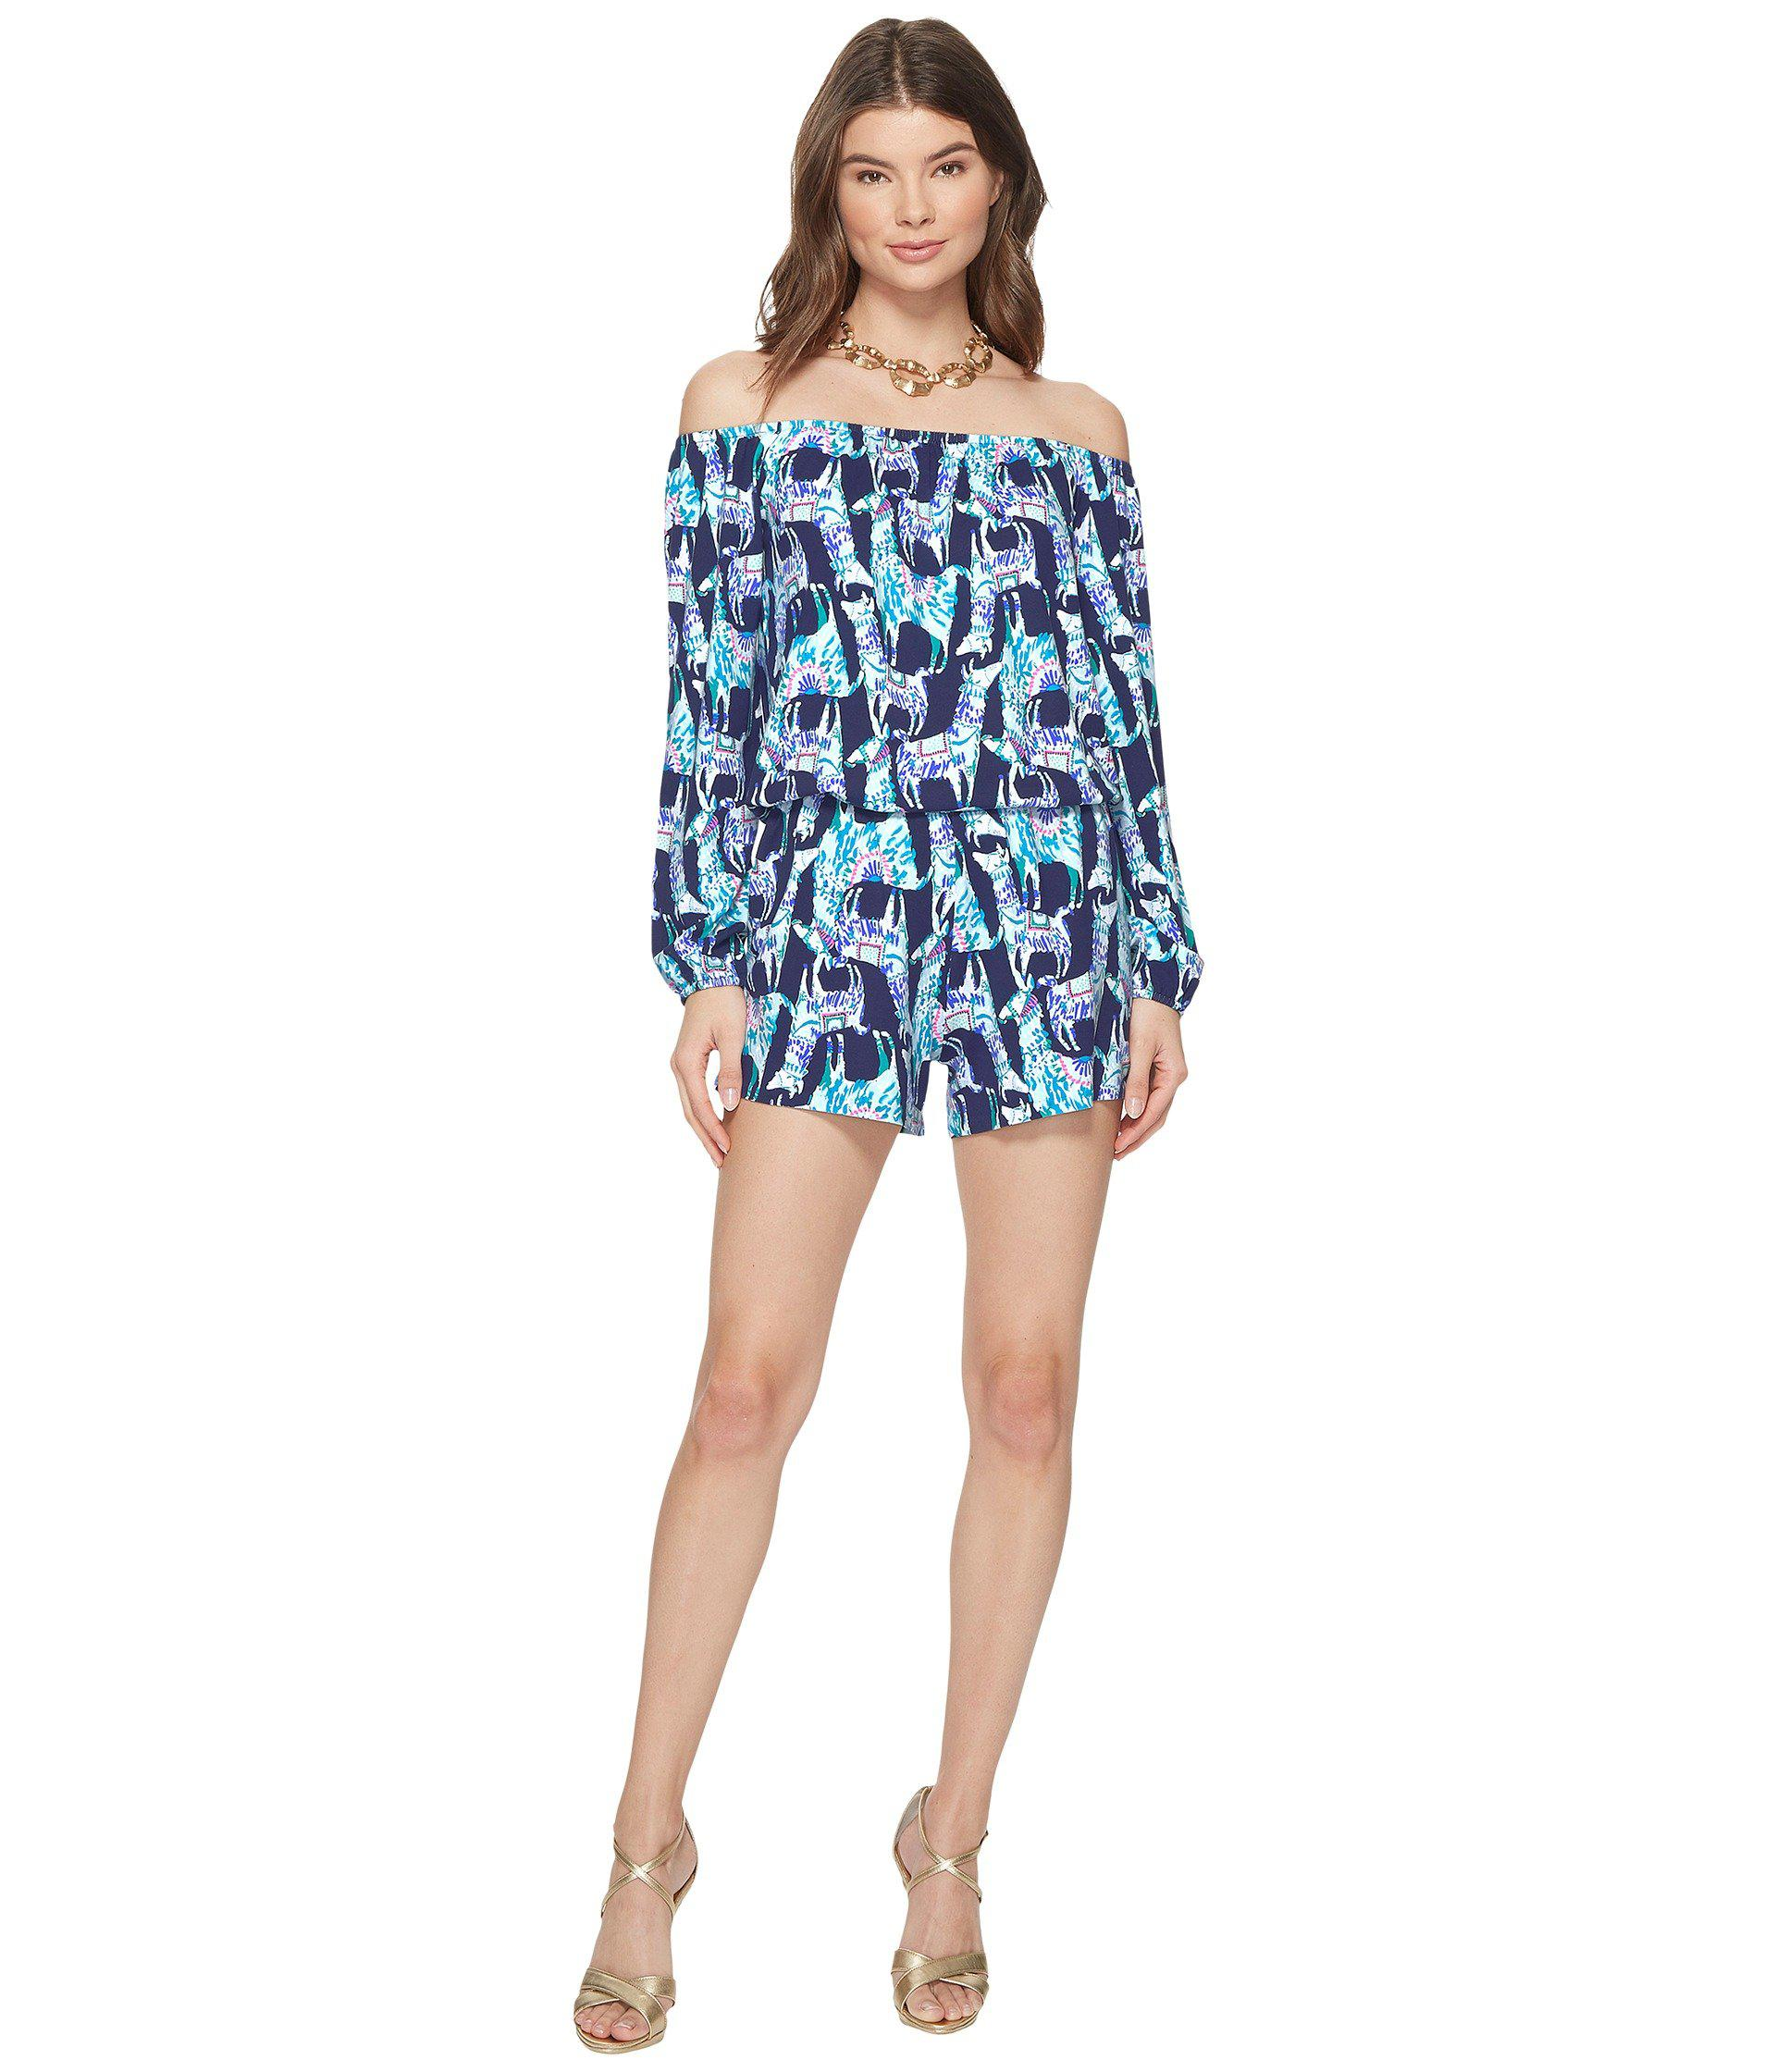 7caa4739af33 Lyst - Lilly Pulitzer Lana Romper in Blue